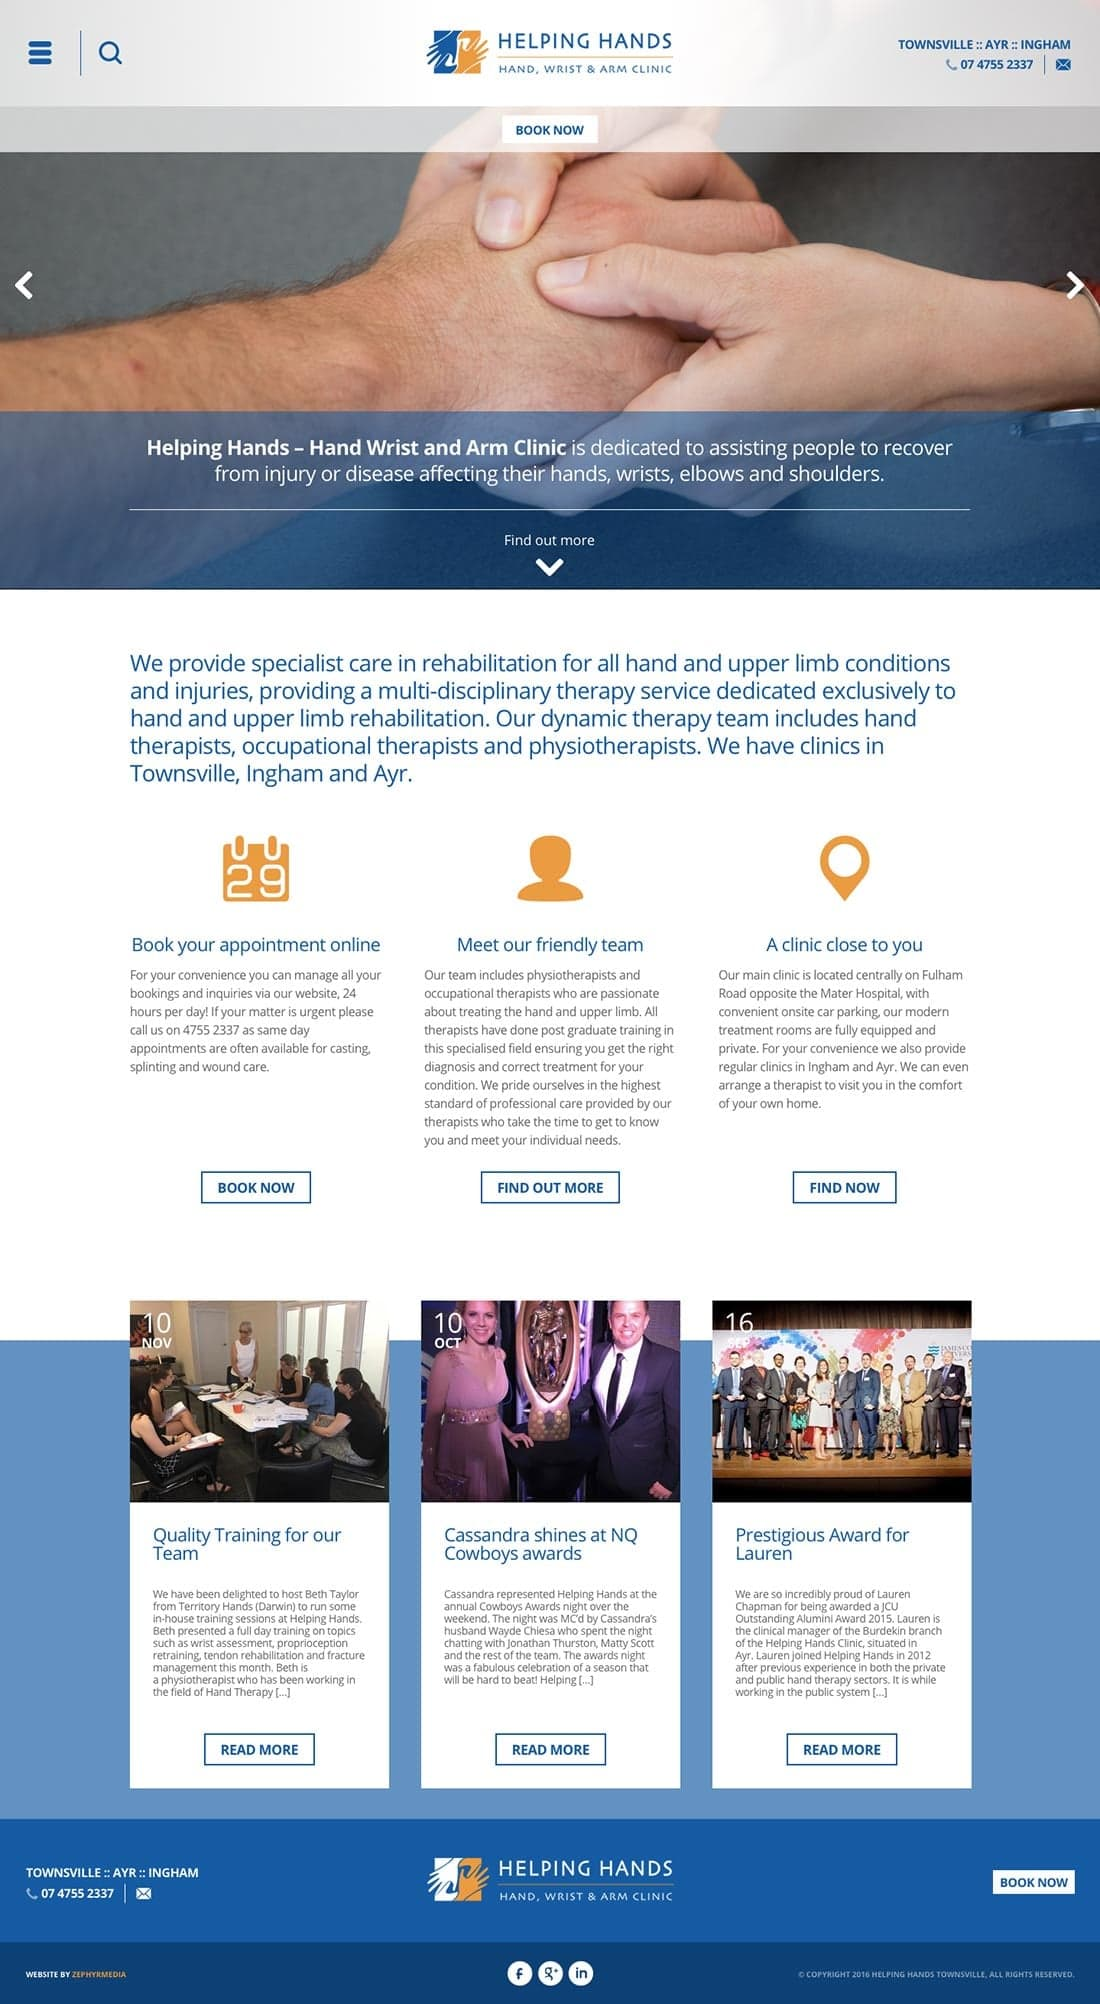 Responsive Website Design by Zephyrmedia